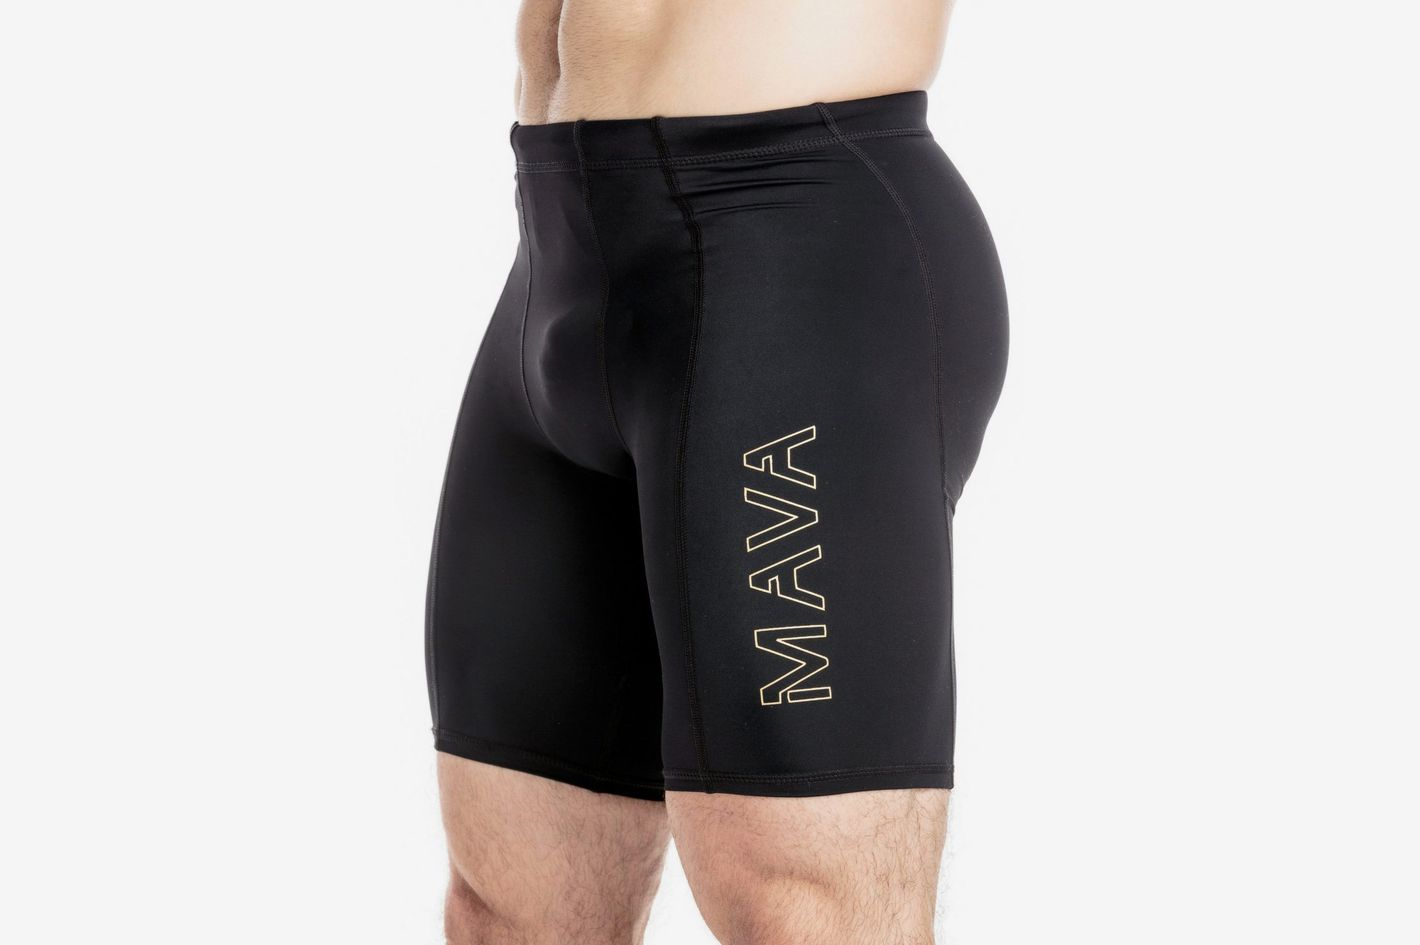 11 Best Compression Shorts for Men 2018 9d267446b